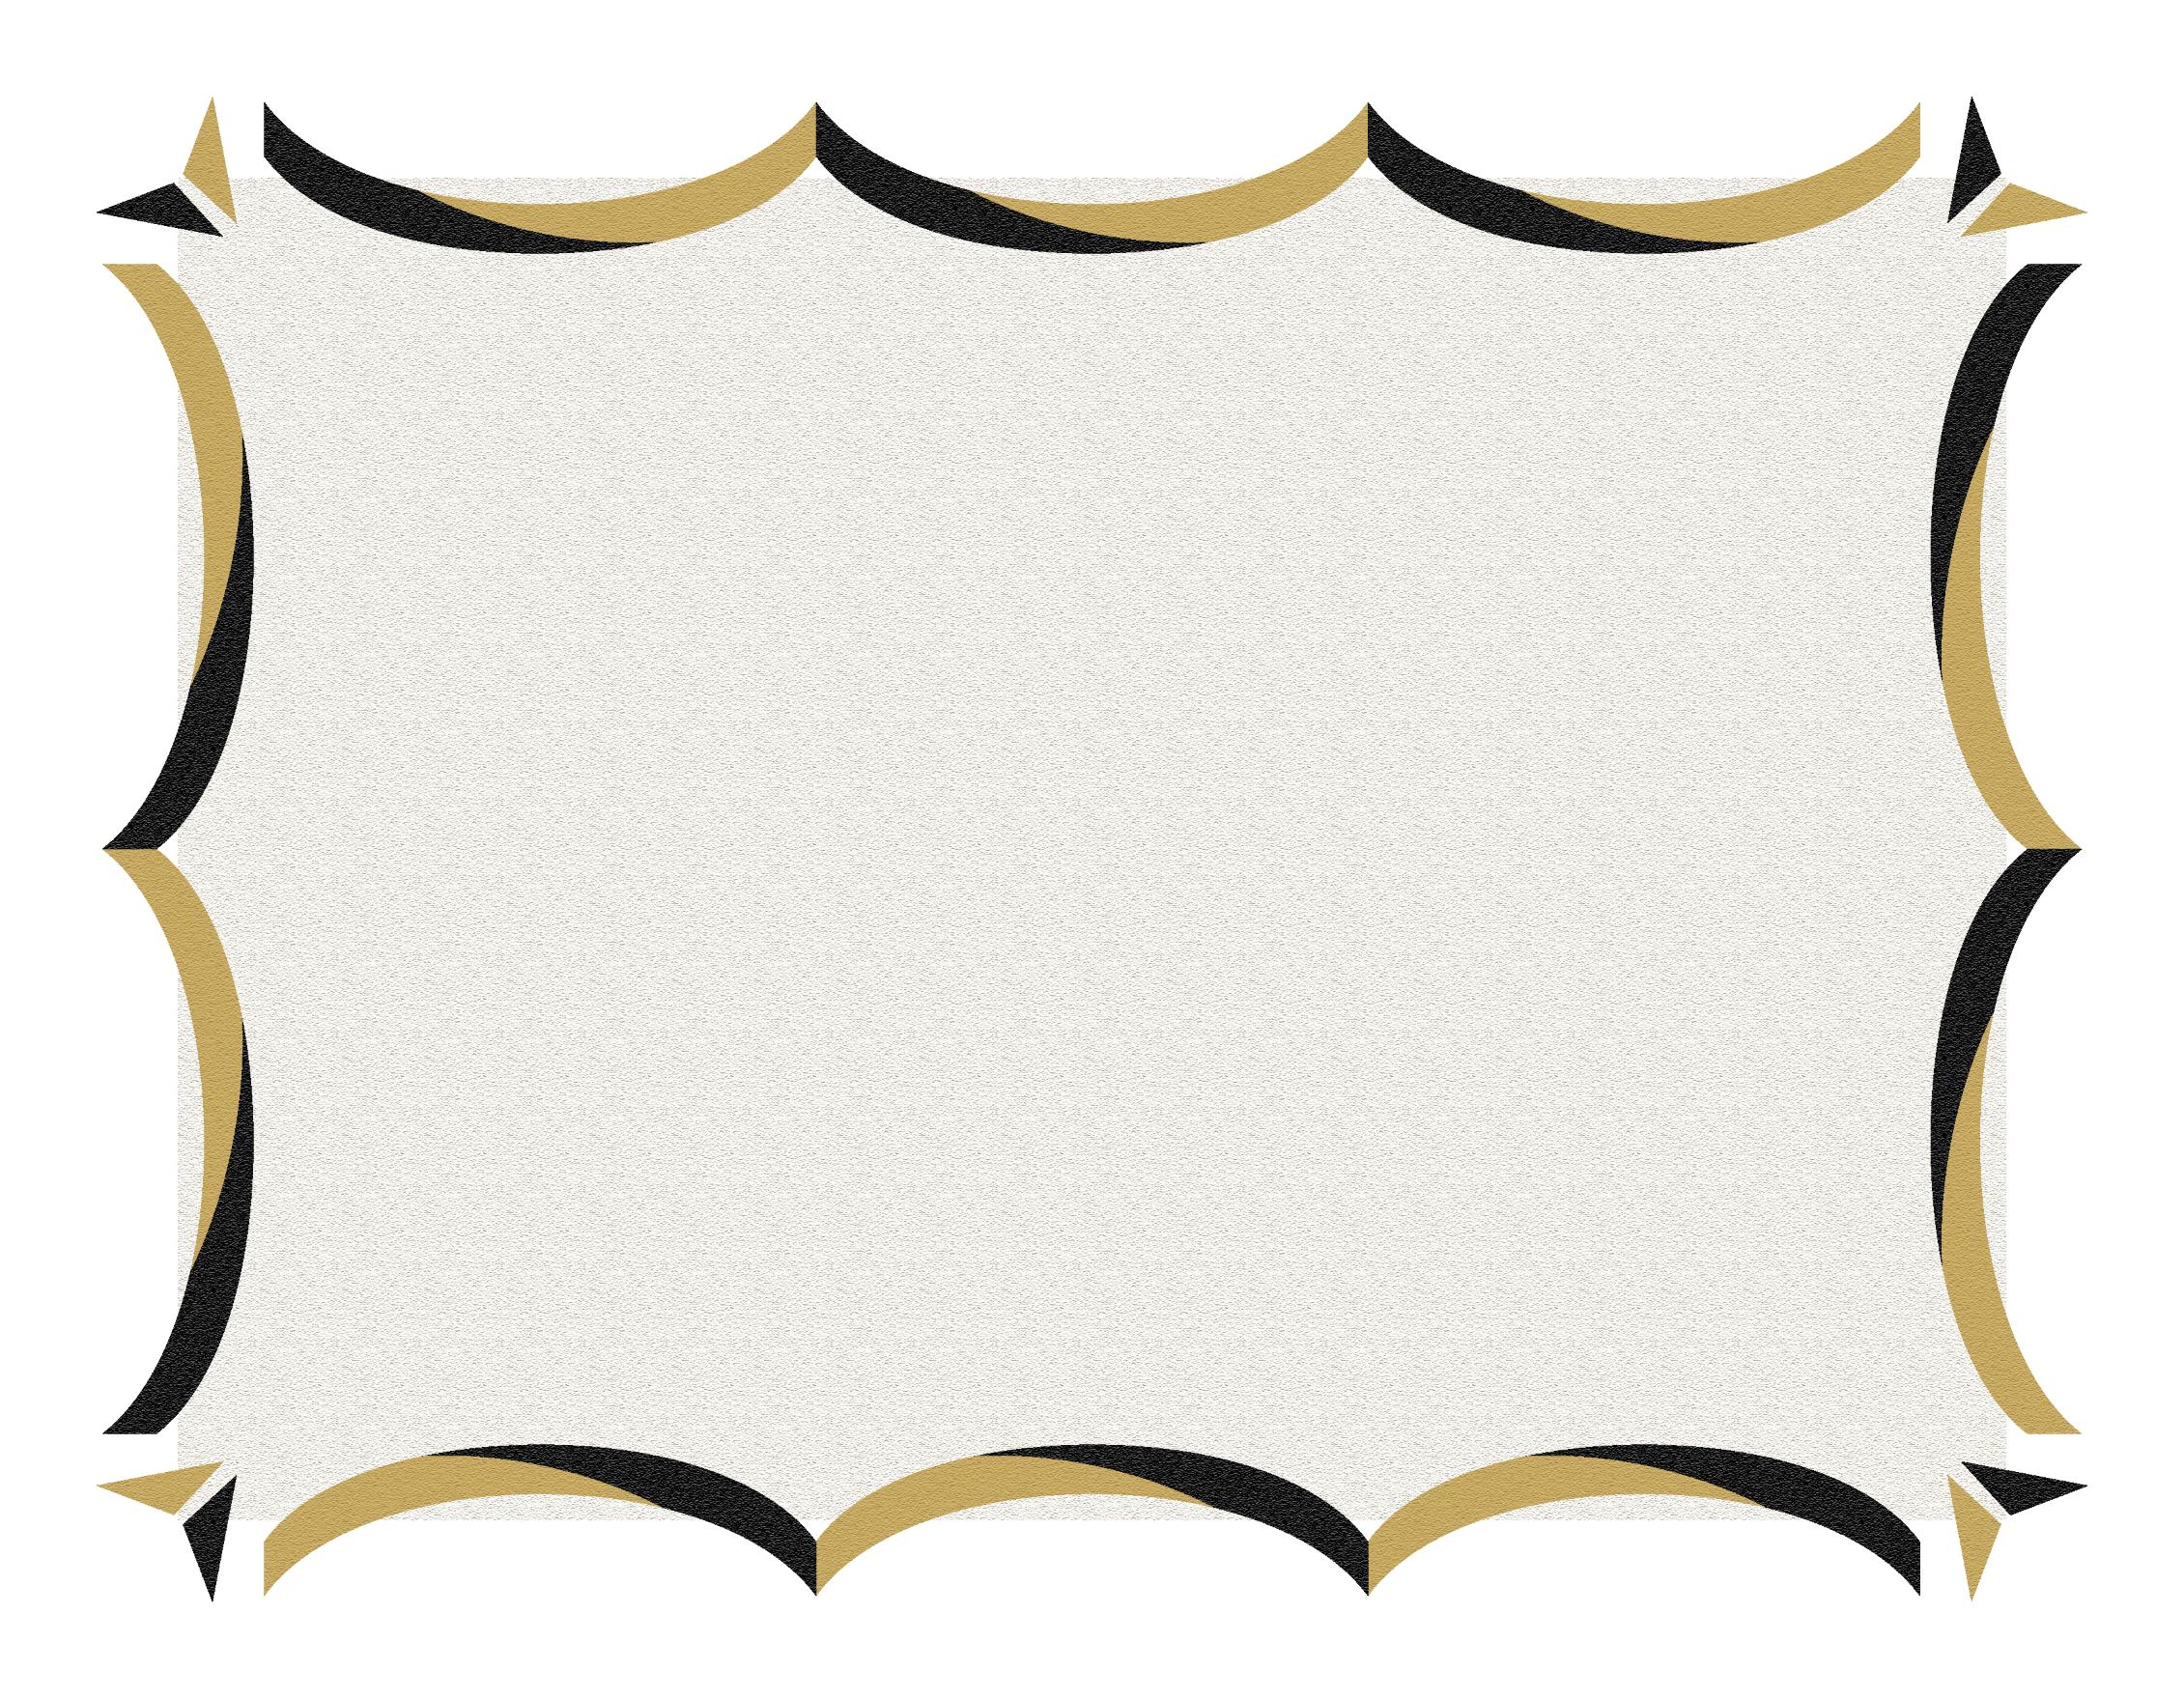 2261x1759 Border Design For Certificate Clipart Best Borders Templates Clip